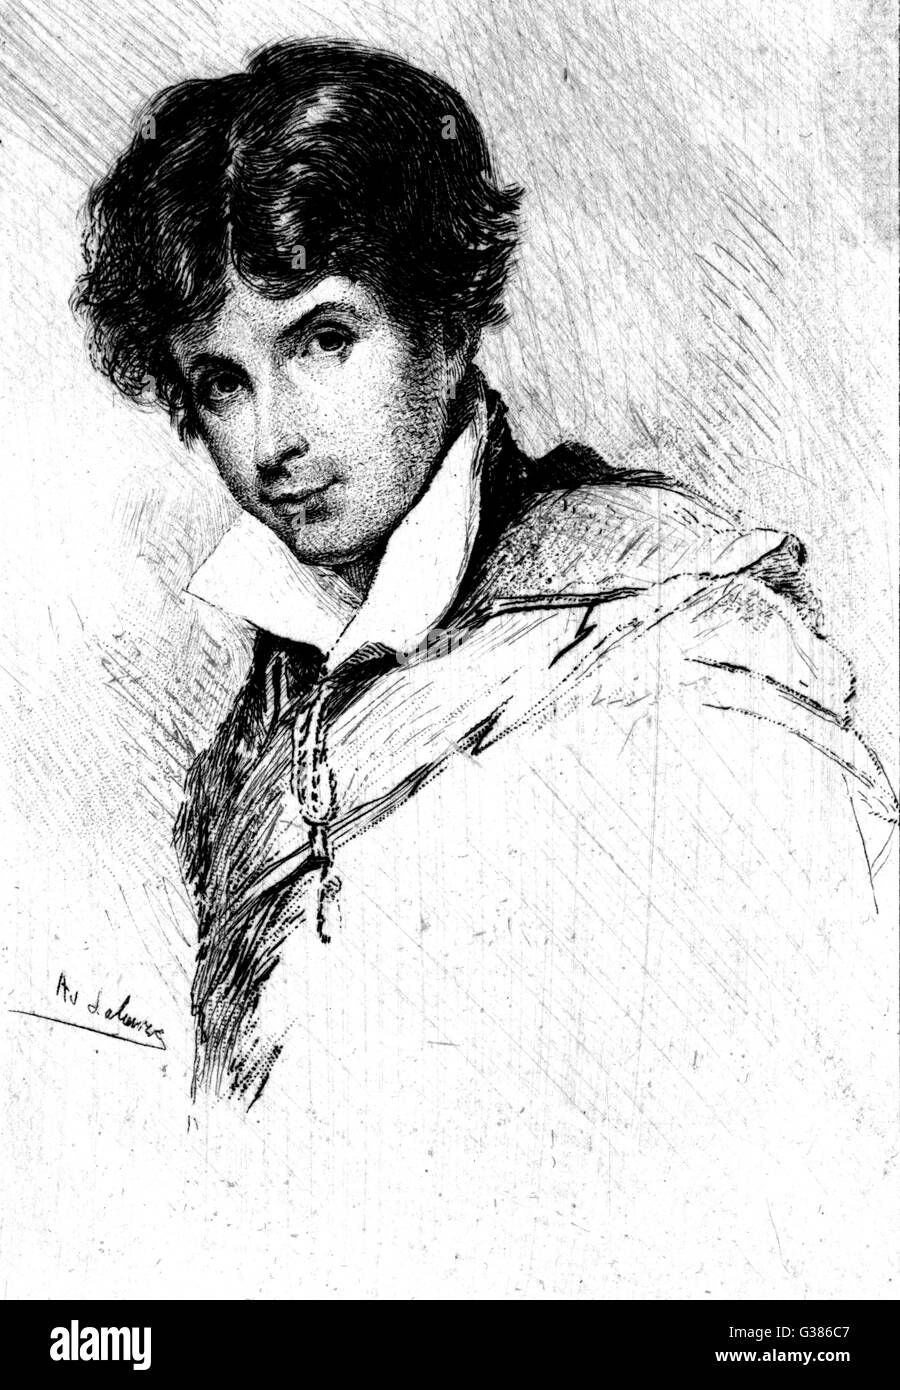 leigh hunt as poet and essayist James henry leigh hunt (1784-1859), english essayist and poet who was  imprisoned for two years in 1813 for writing articles about the prince regent.